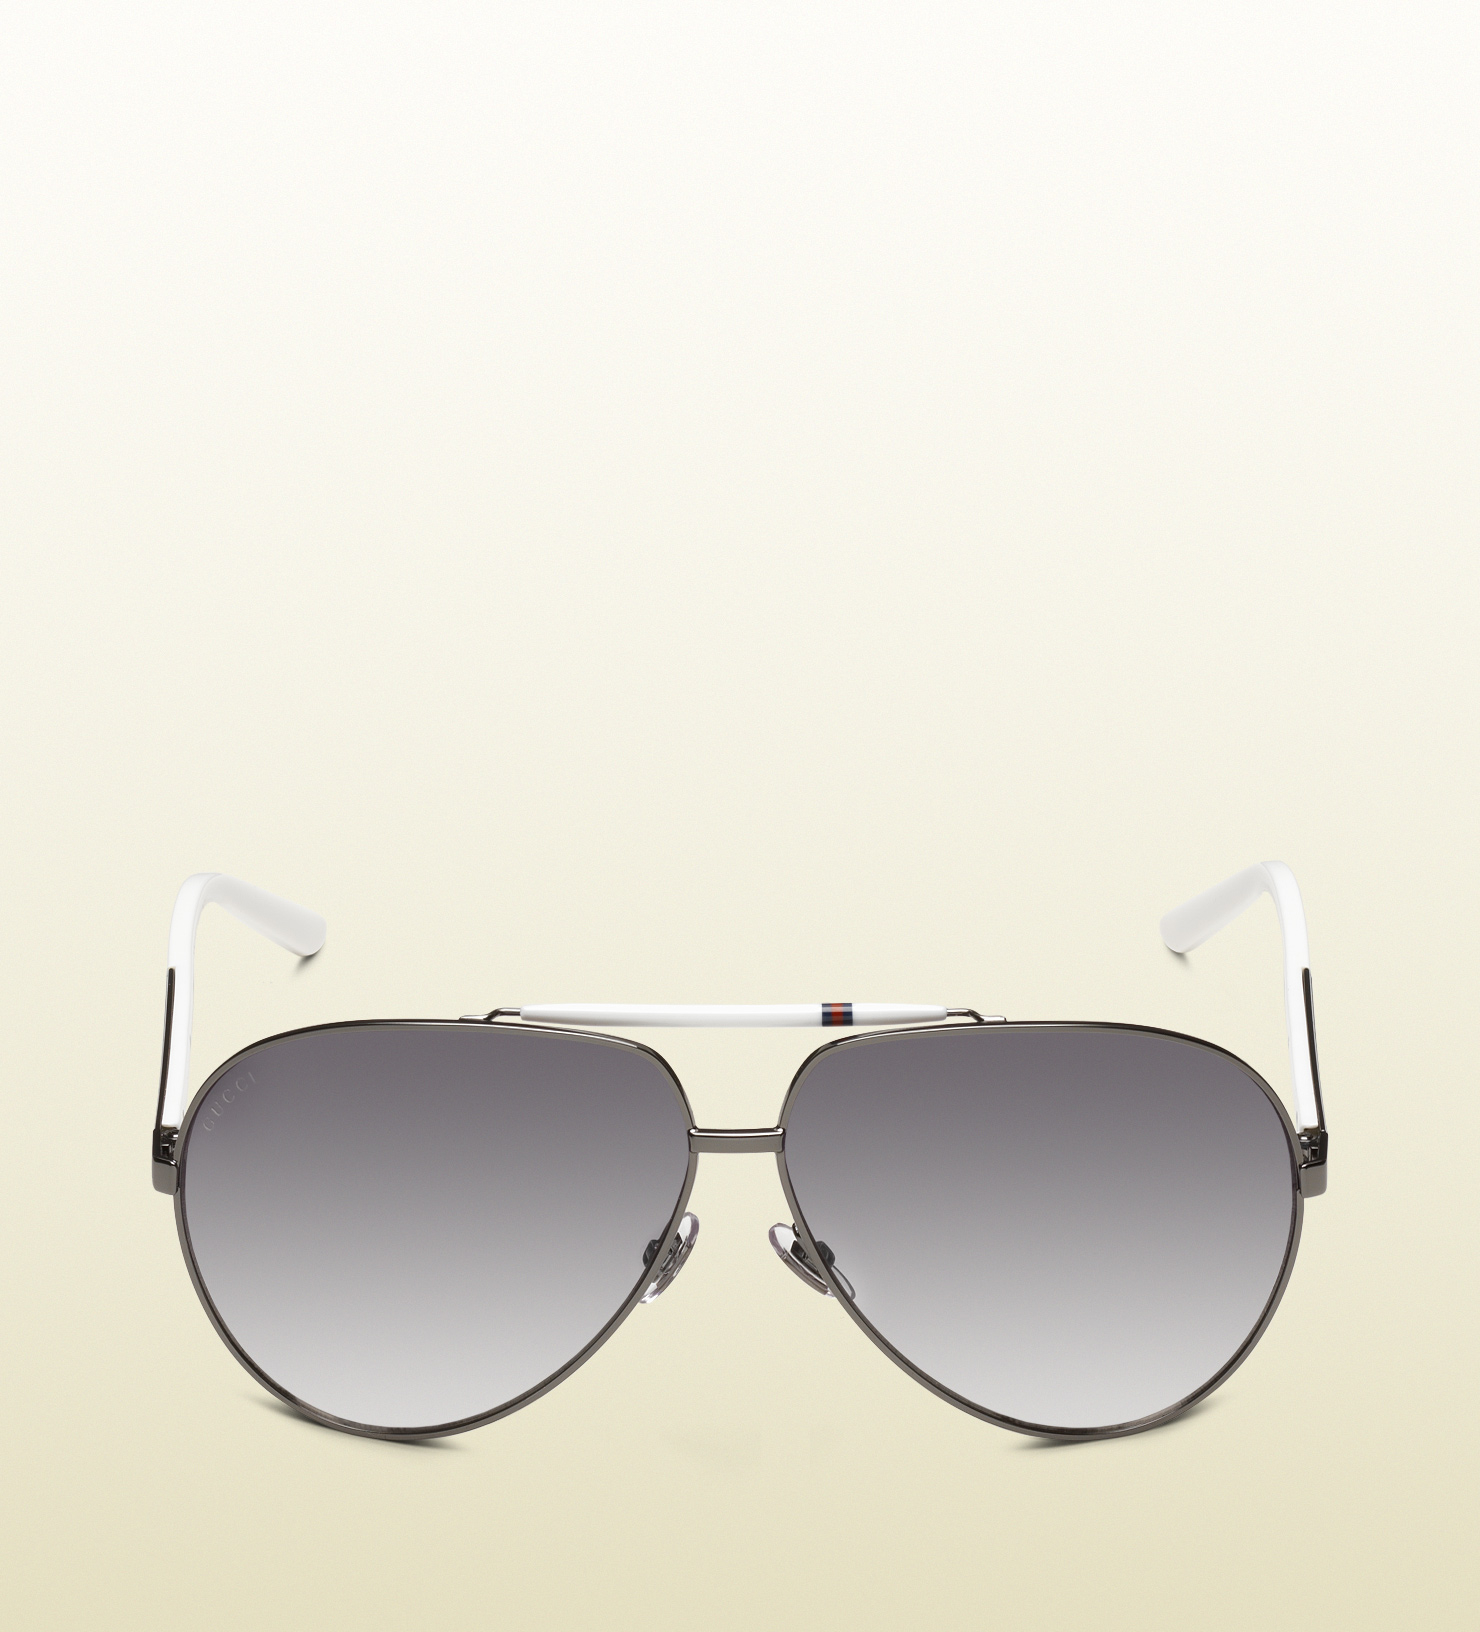 gucci aviator sunglasses. gallery gucci aviator sunglasses t